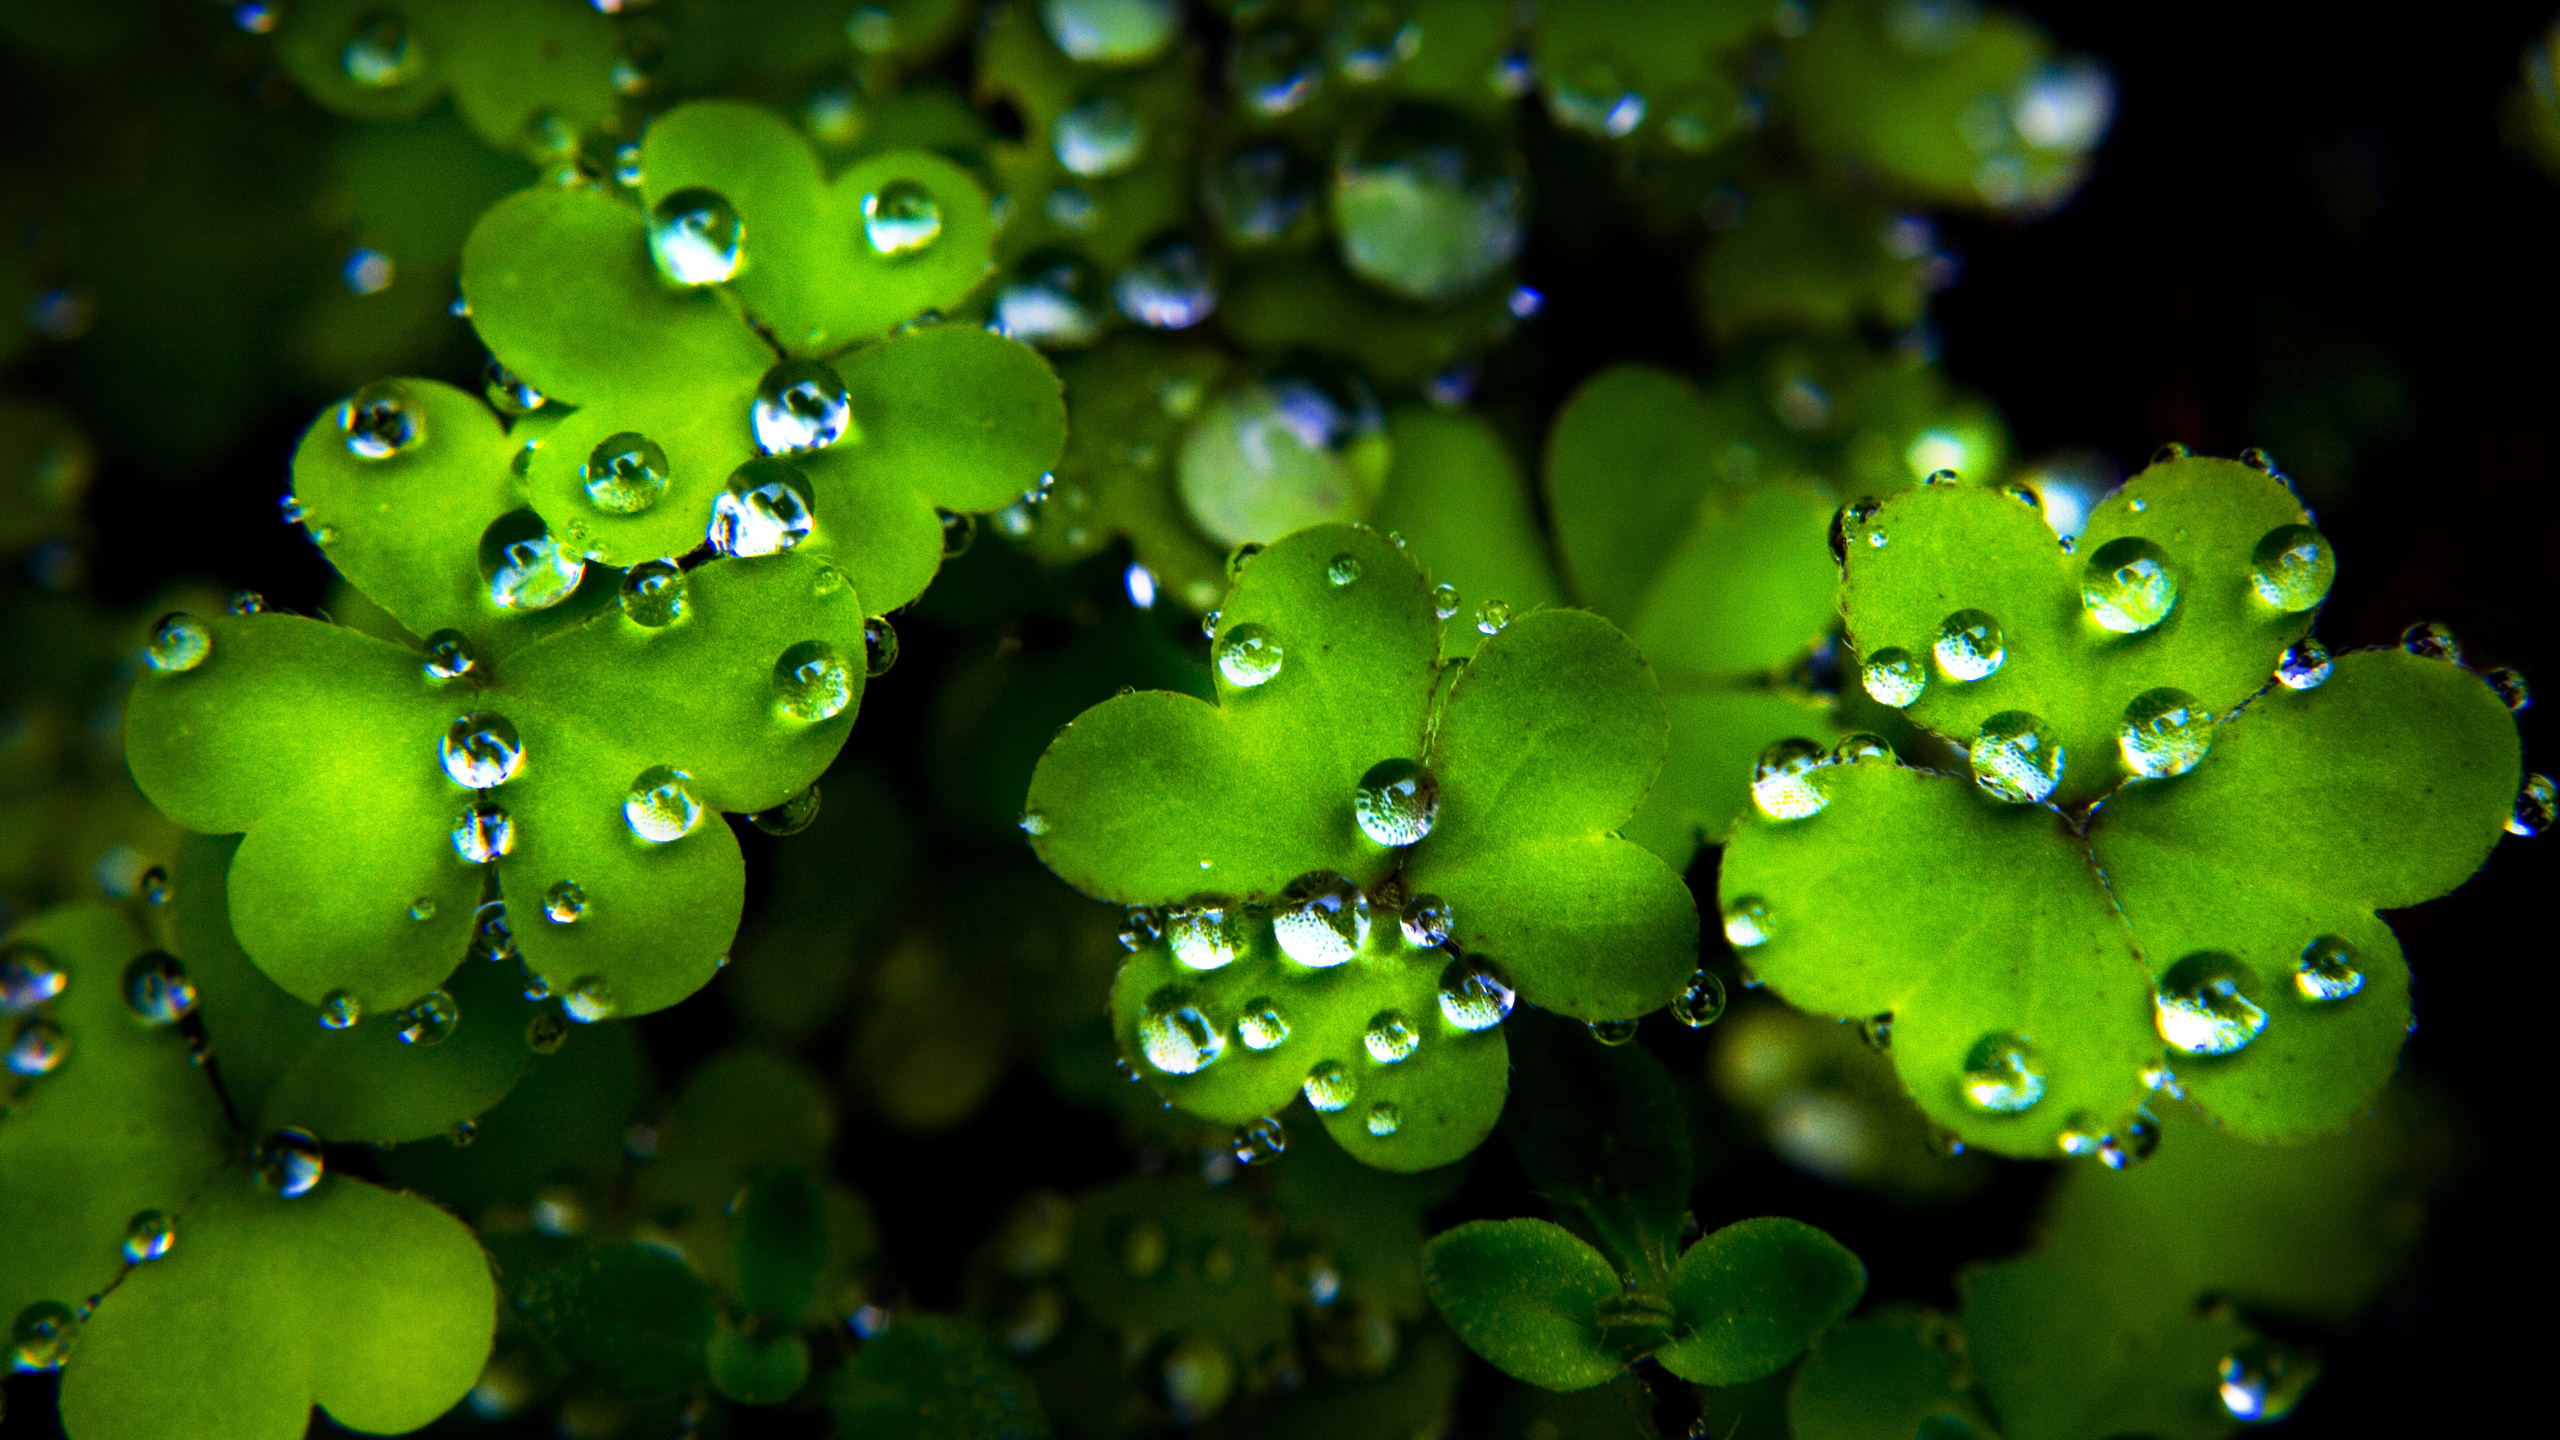 Happy St Patricks Day   Wallpaper High Definition High Quality 2560x1440